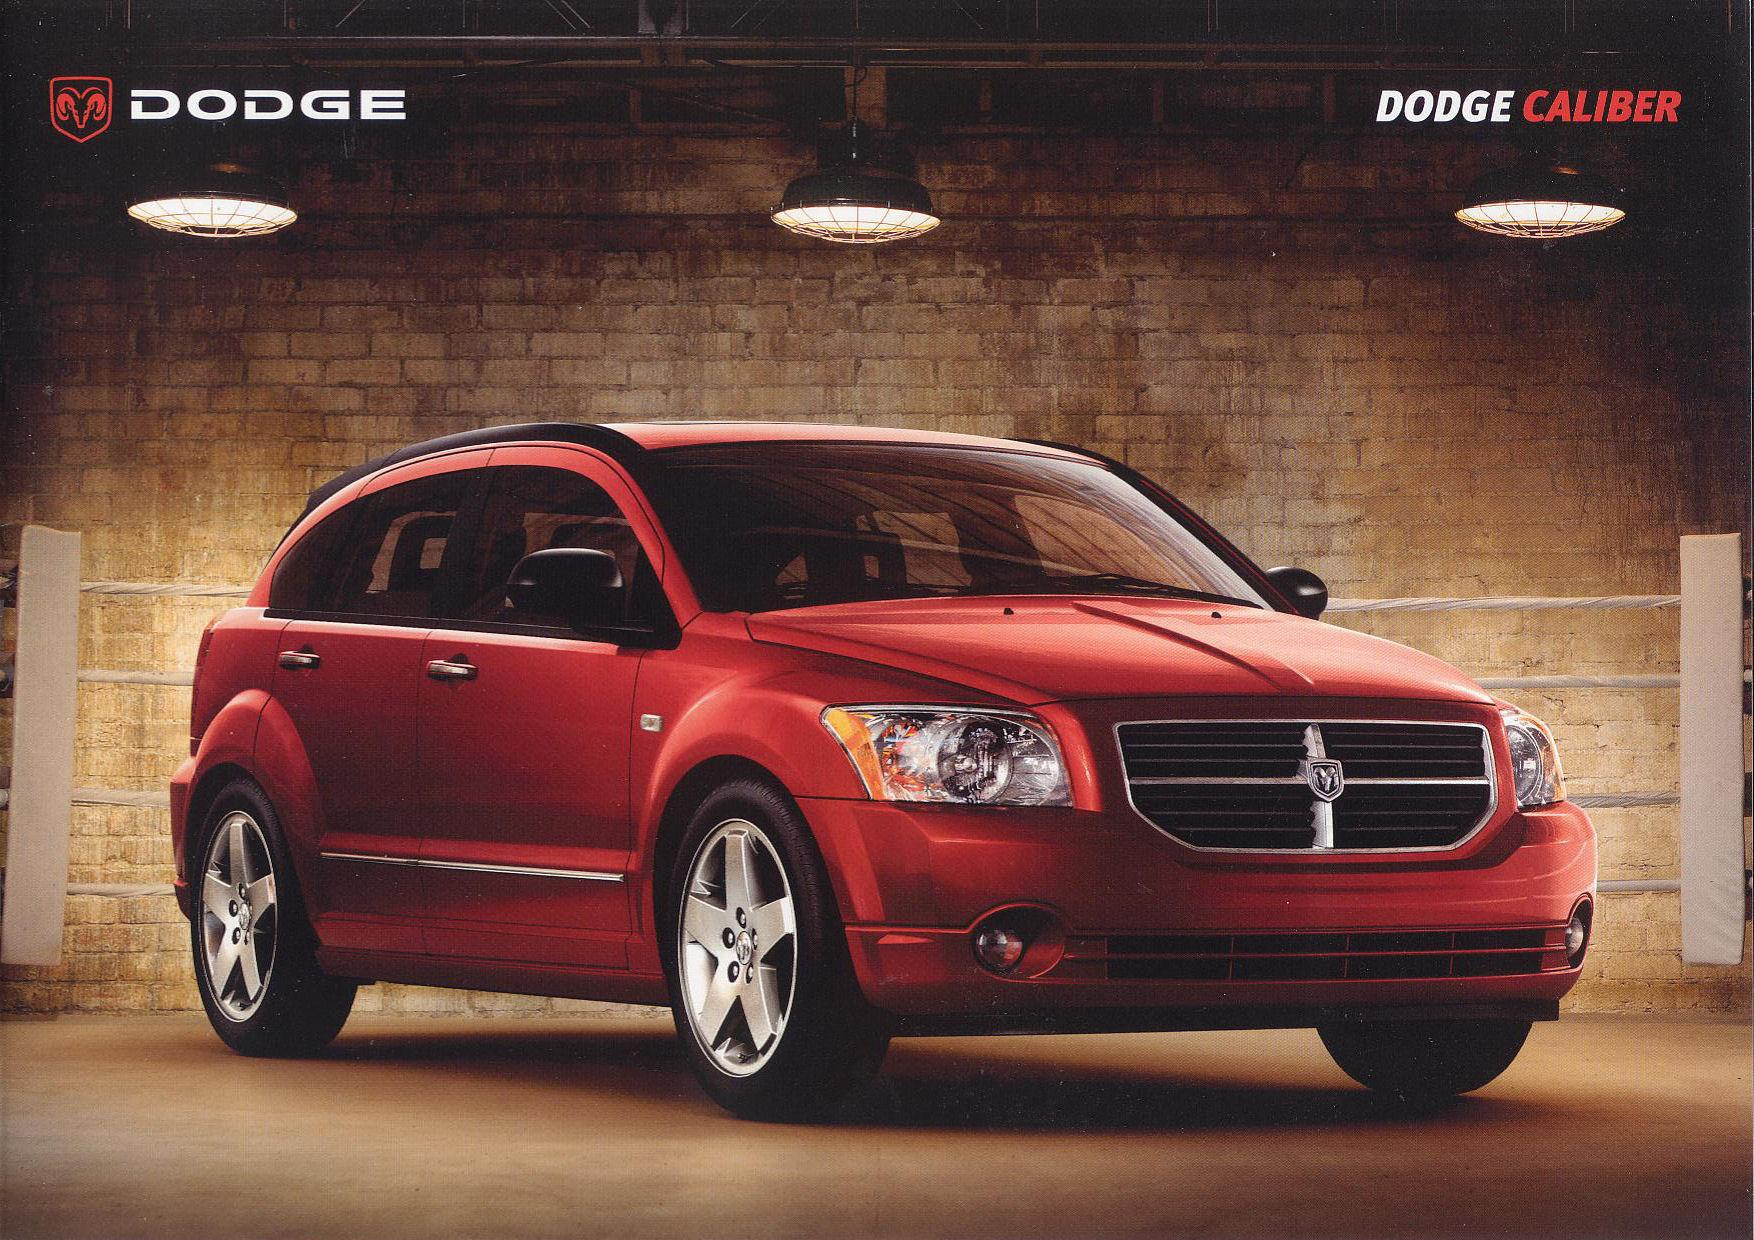 Dodge caliber photo - 2